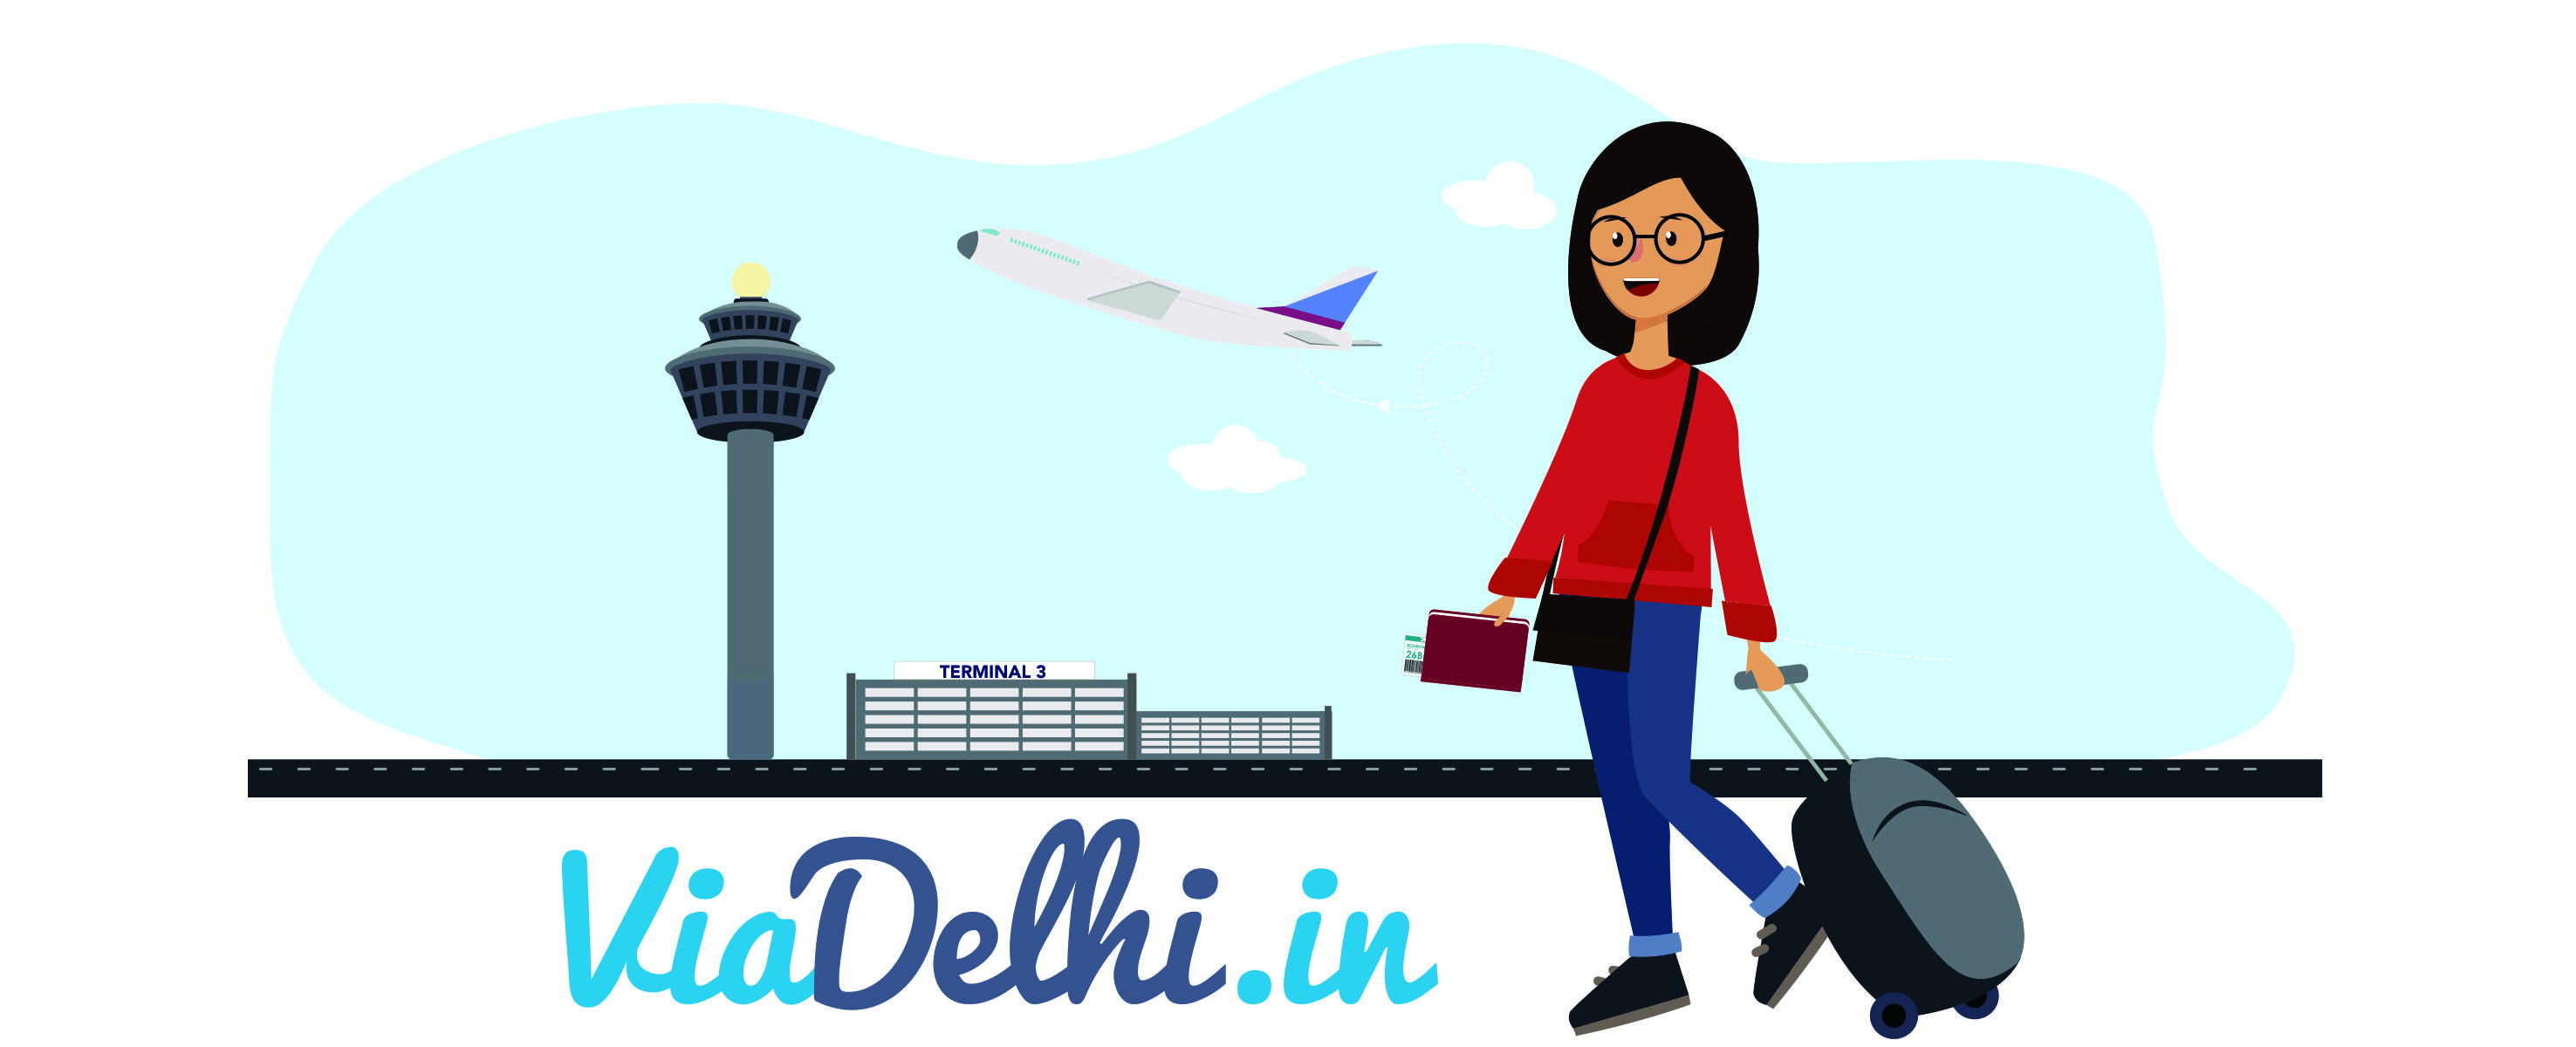 Via Delhi - A Travel Blog For Women